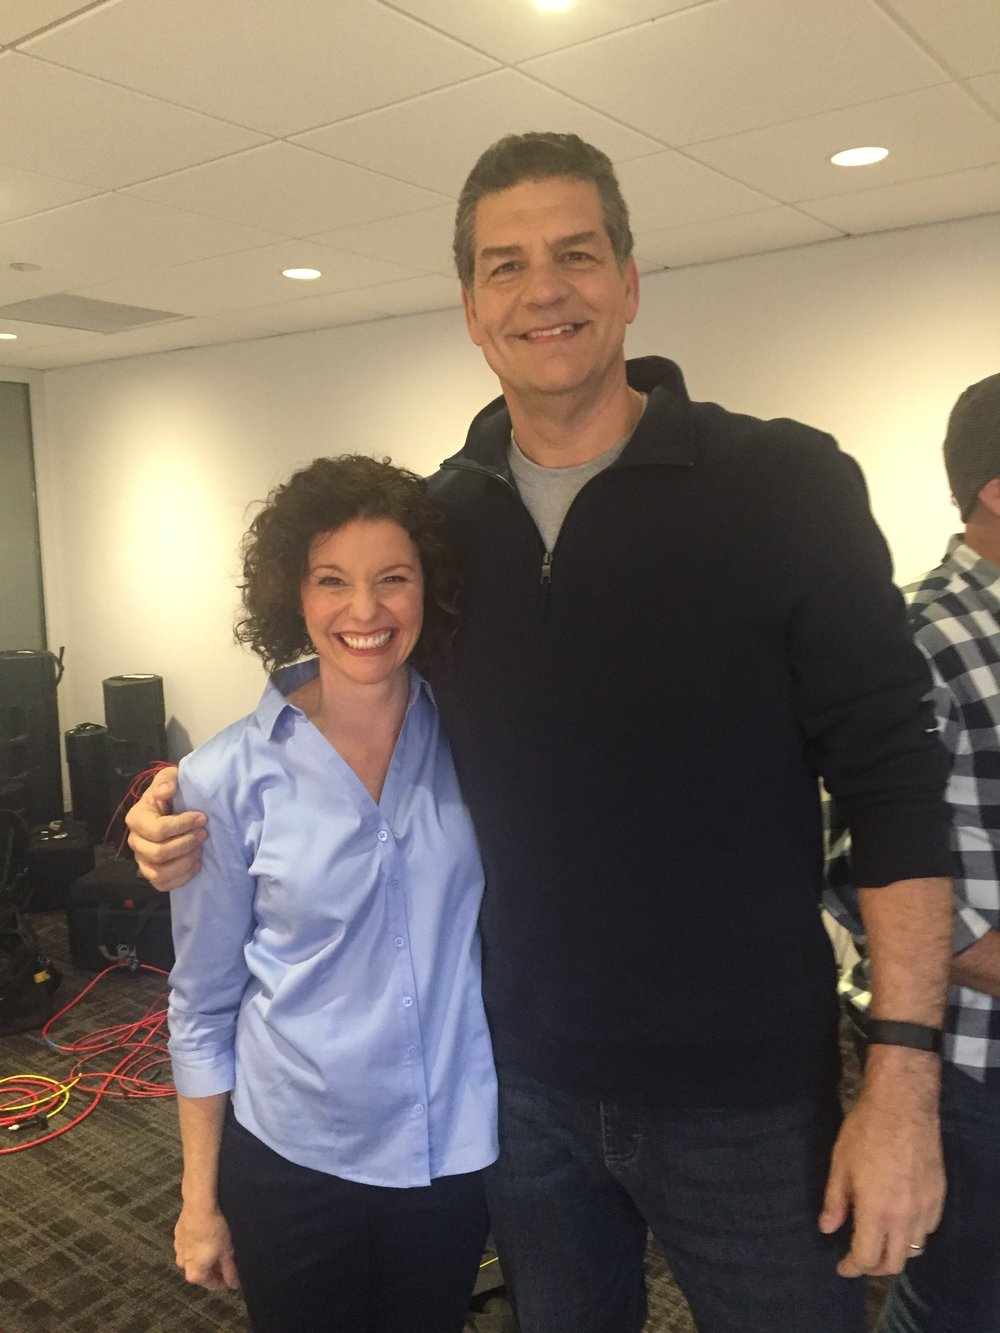 Invokana Commercial with Mike Golic!